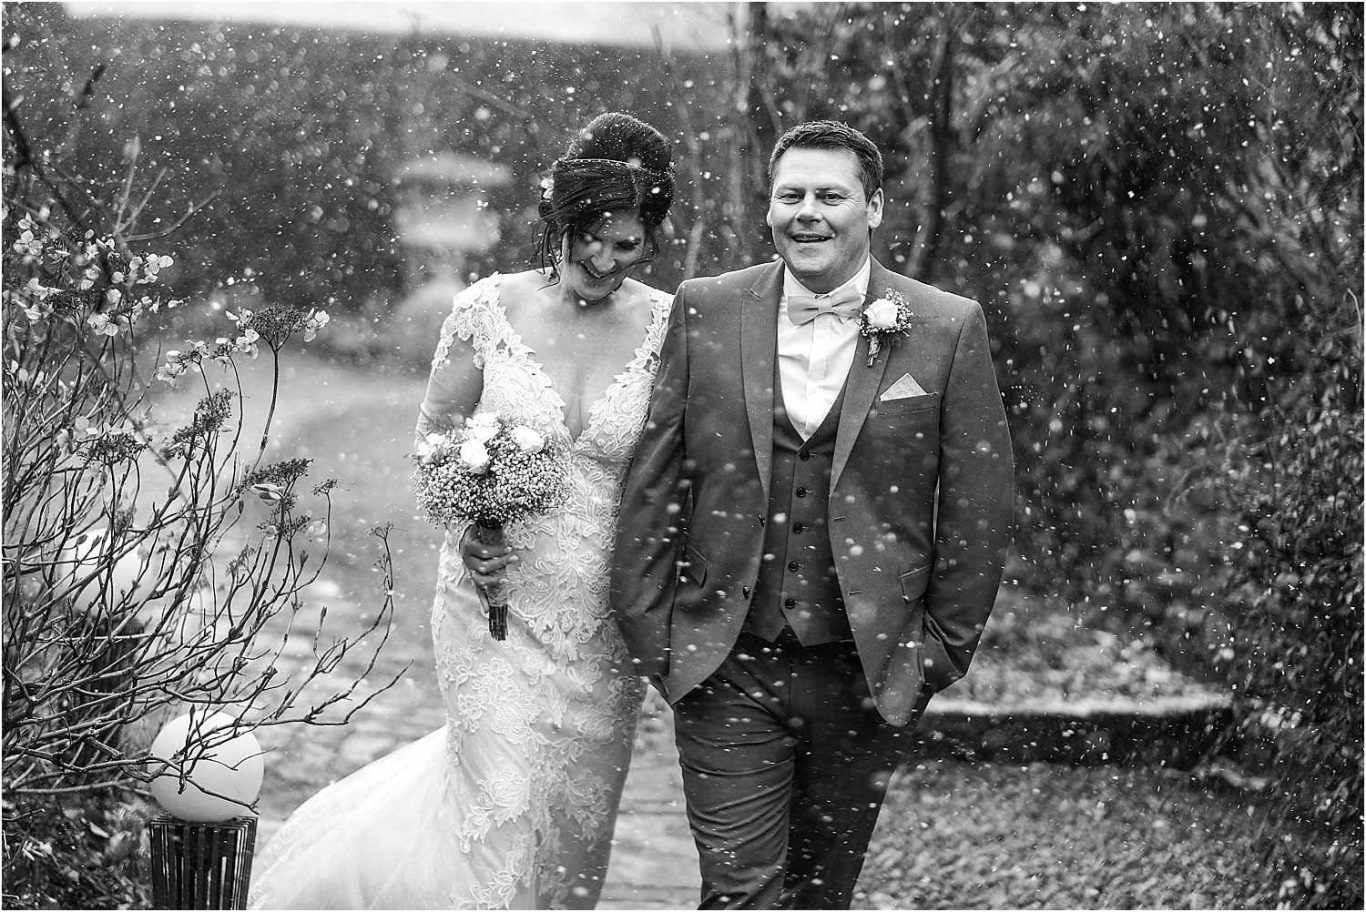 bride and groom walking in snow shower